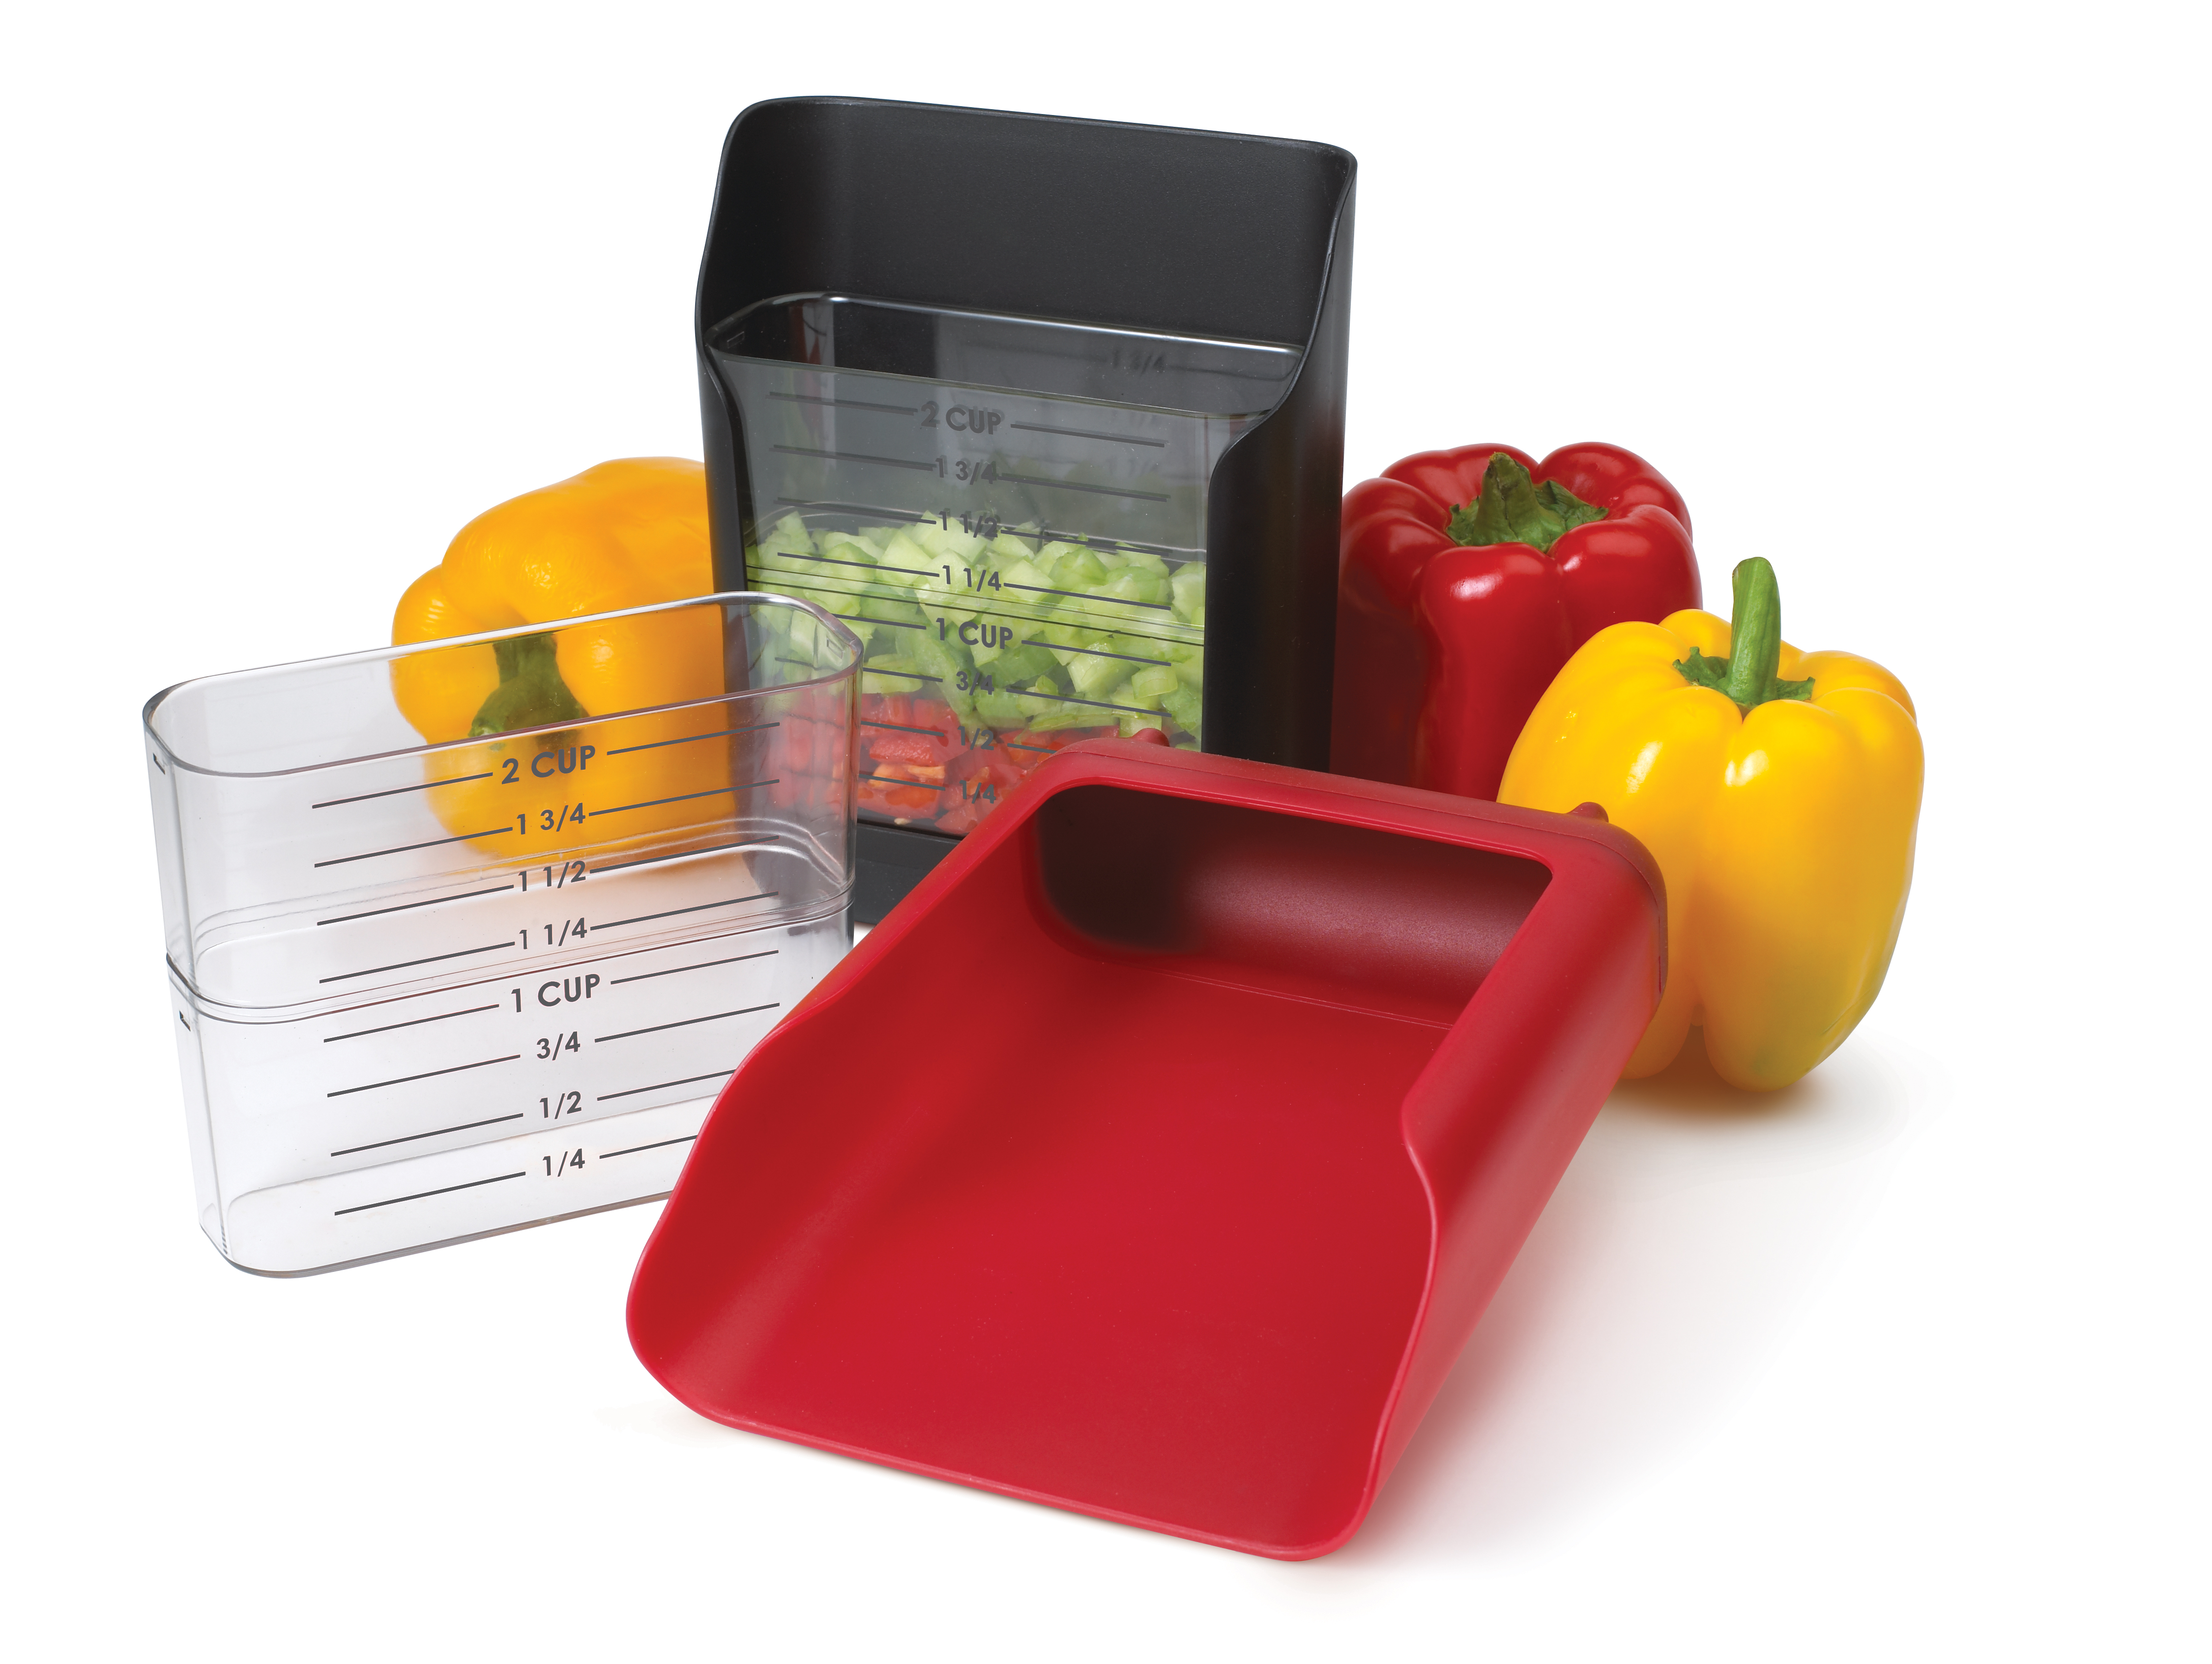 Chef's Planet Red Prep Taxi Measuring Scoop 2 Cup